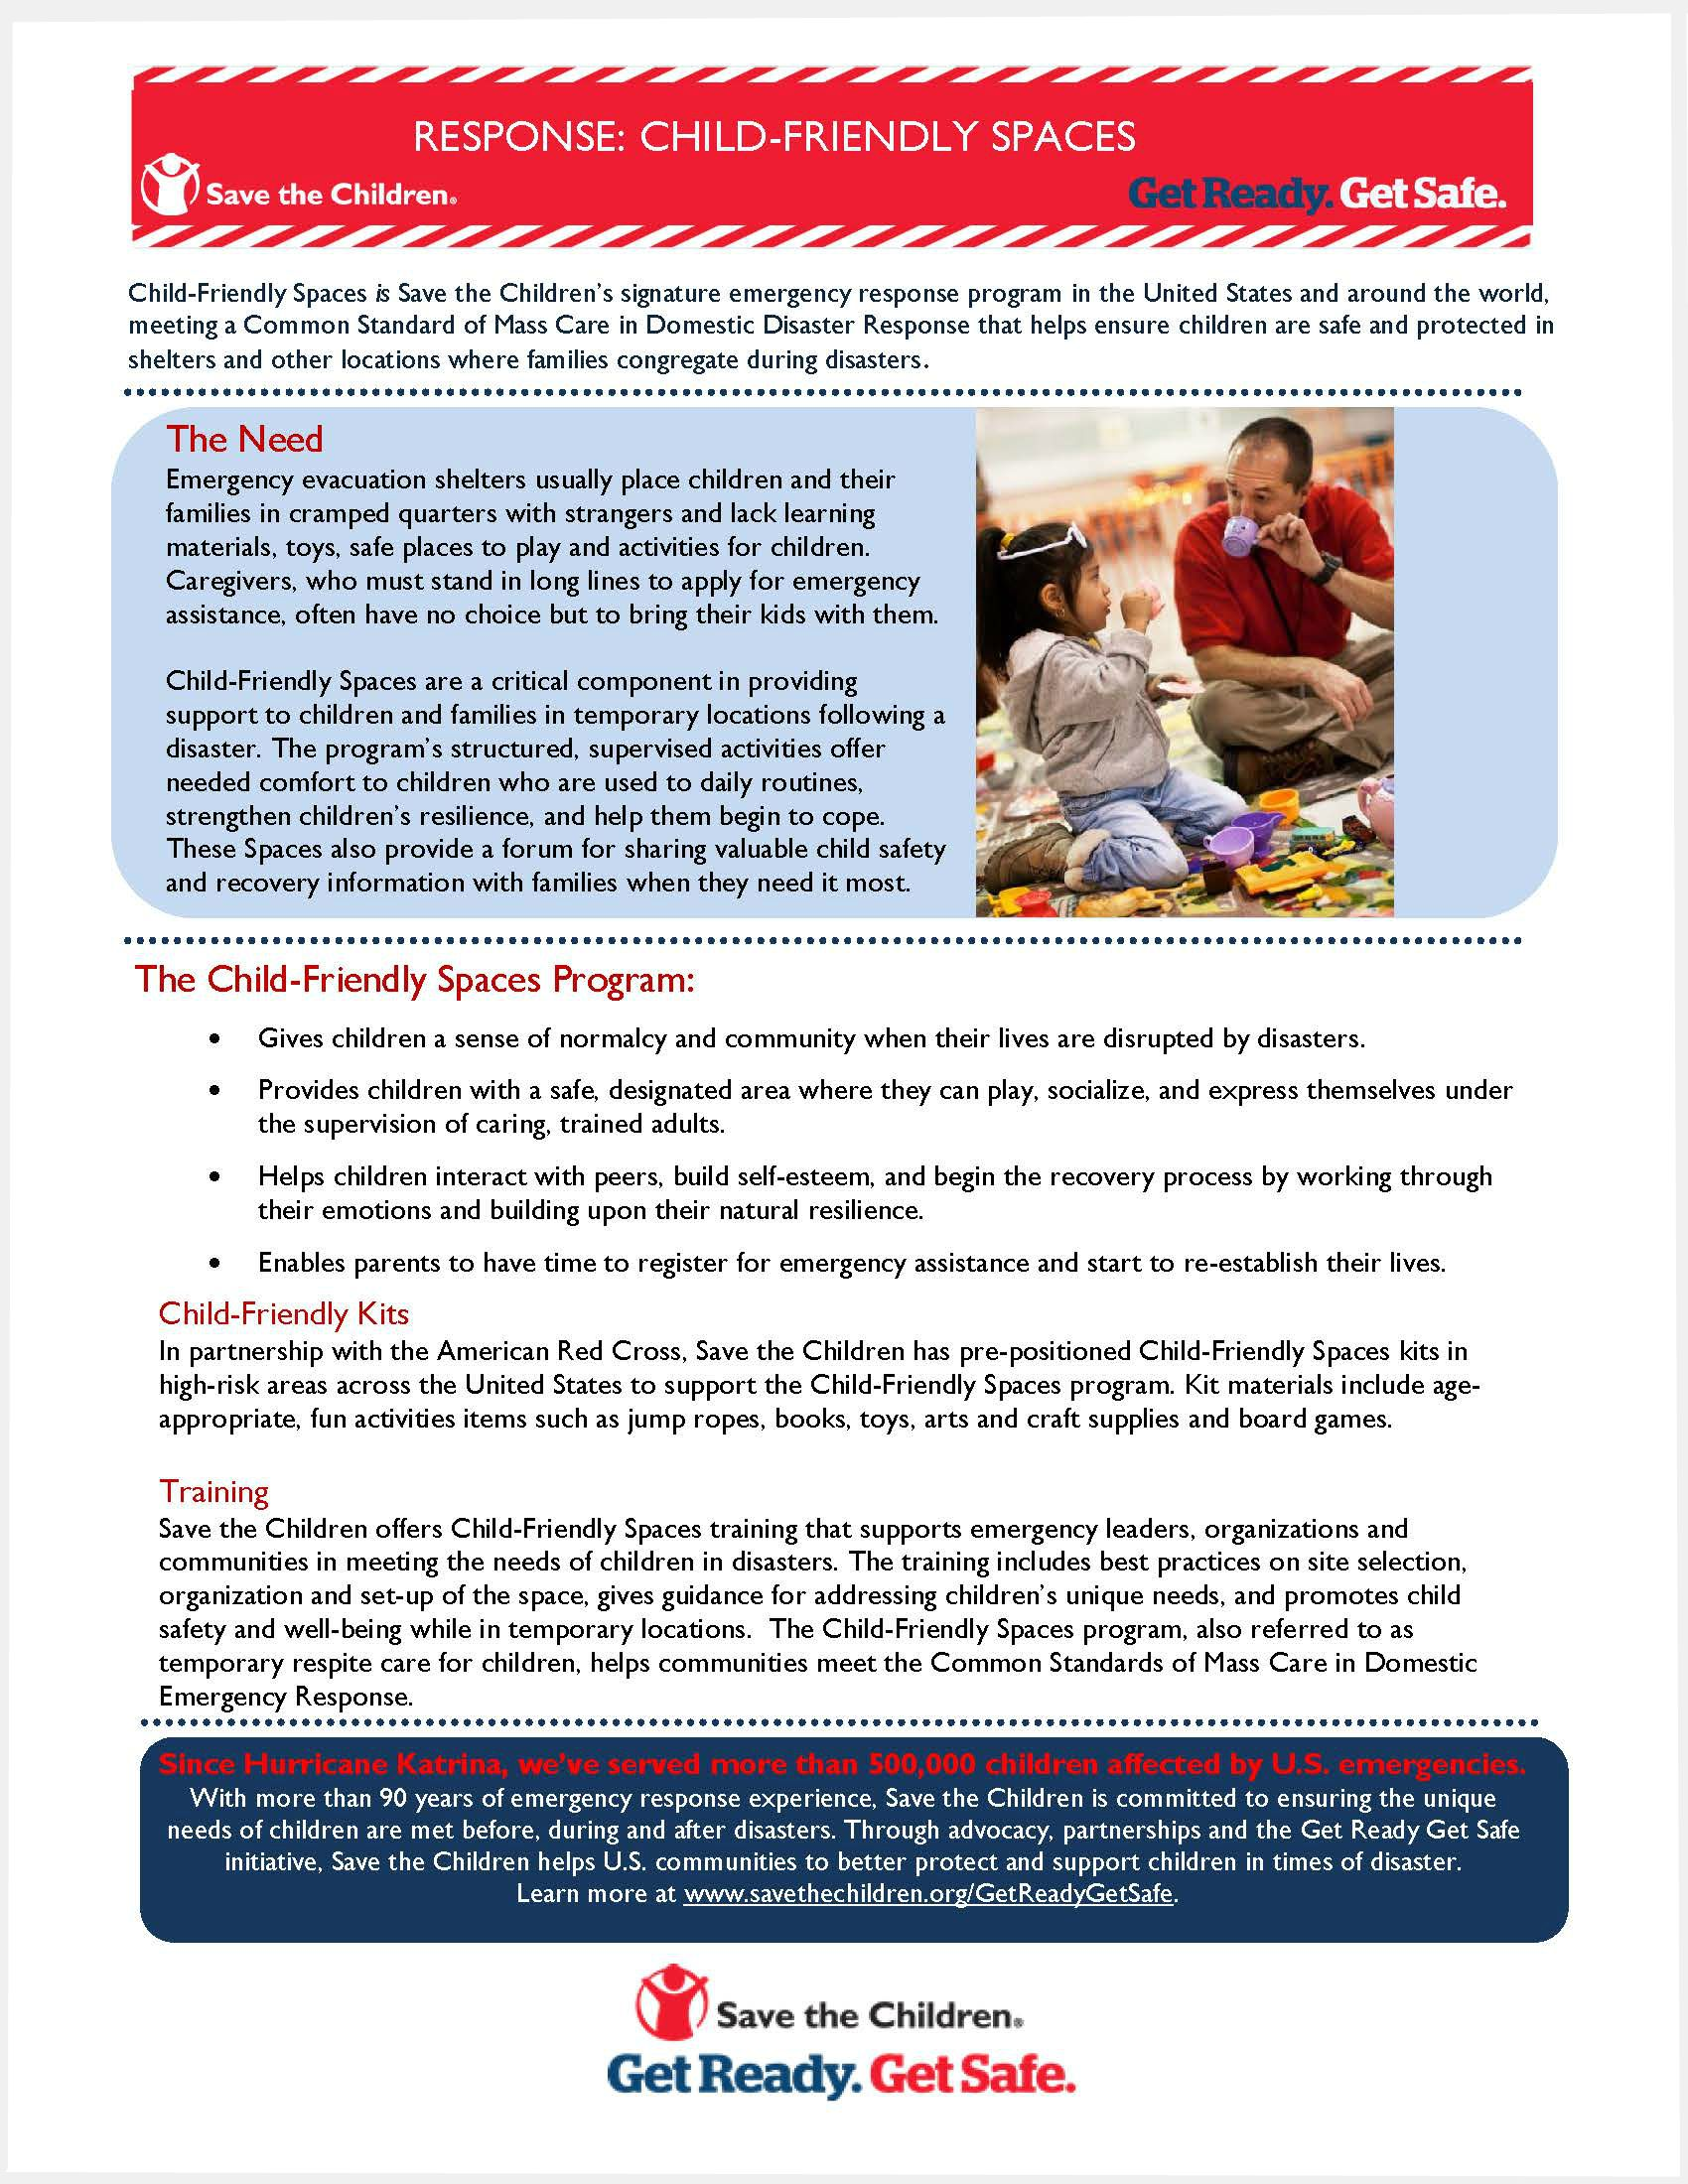 Child-Friendly Spaces Fact Sheet